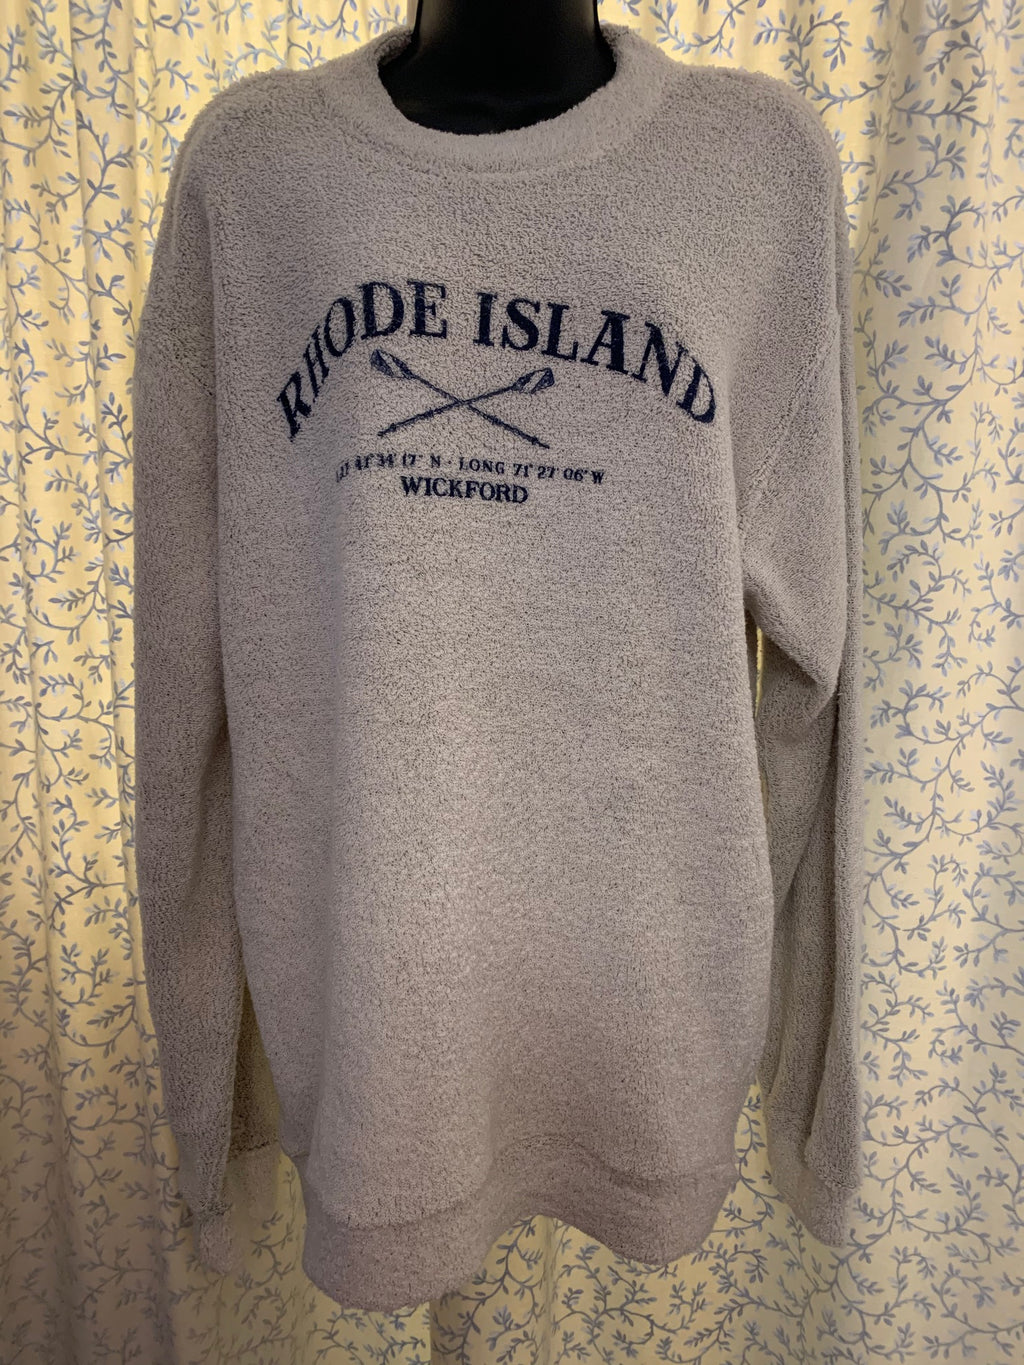 "This sweatshirt is the Original Big Loop Terry Sweatshirt!  The image in navy ink reads Rhode Island, with crossed oars, Latitude is 41 degree, 34' 17"" N and Longitude is 71 degree, 27' 06"" W the last line reads Wickford.  It has a reverse construction with the terry face on the outside. Please note to wash the sweatshirt separate with like colors for the first wash as it can shed.  Sweatshirt is made by Comfort Colors and hand screen printed on Cape Cod, MA."